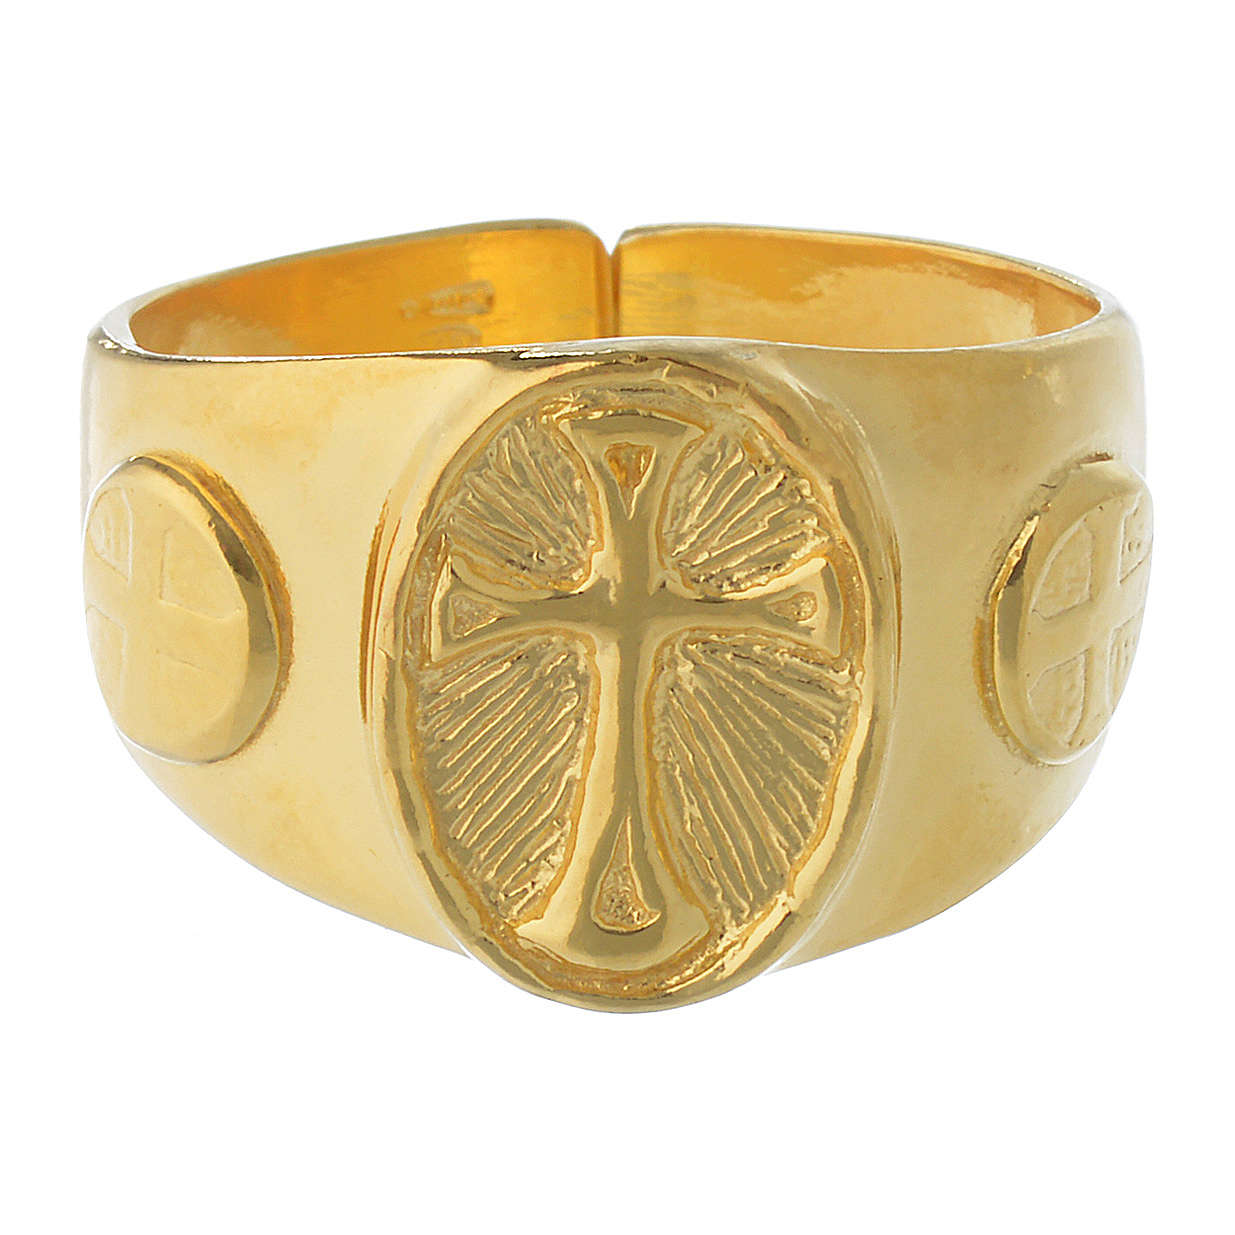 Bishop Ring in gold plated silver 925 3